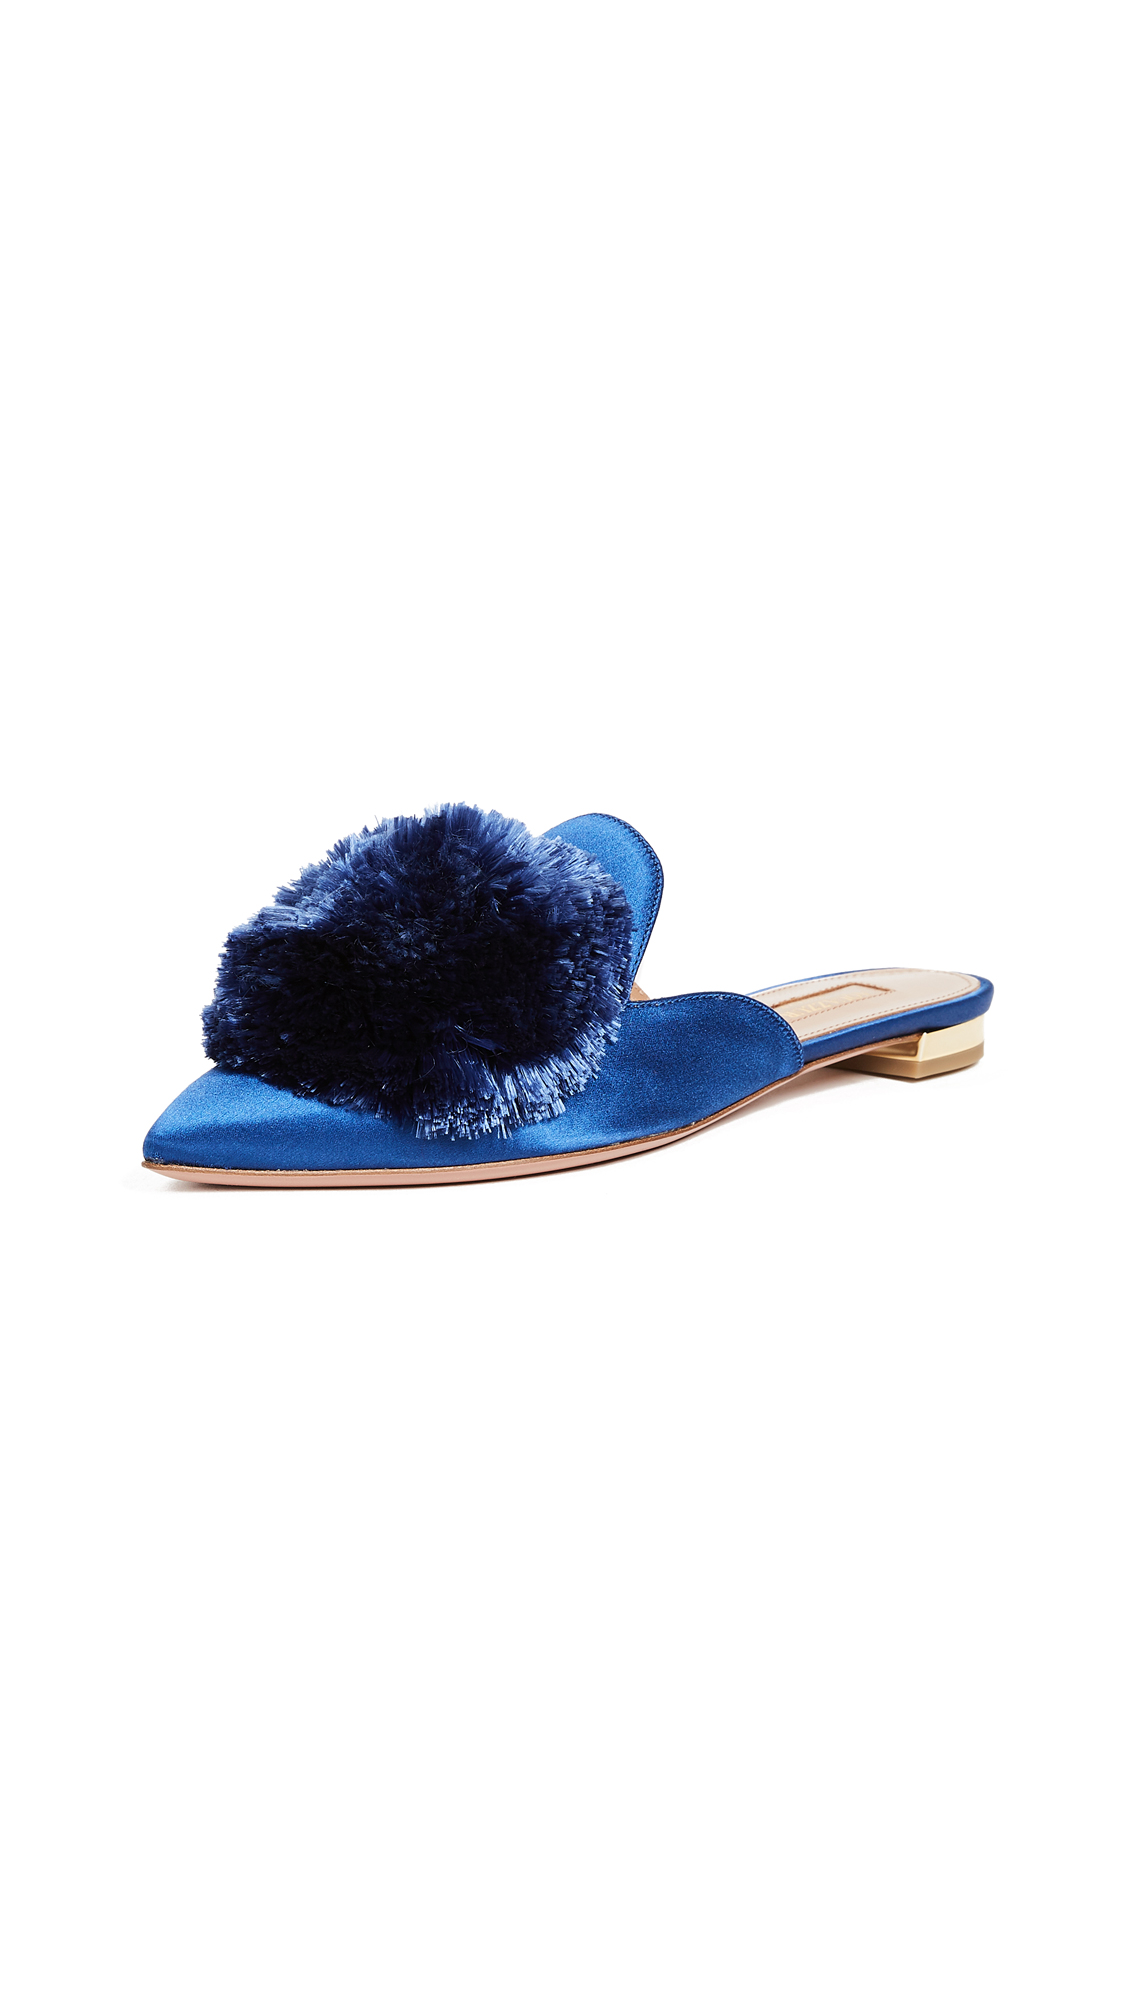 Aquazzura Powder Puff Flats - Blue Bell